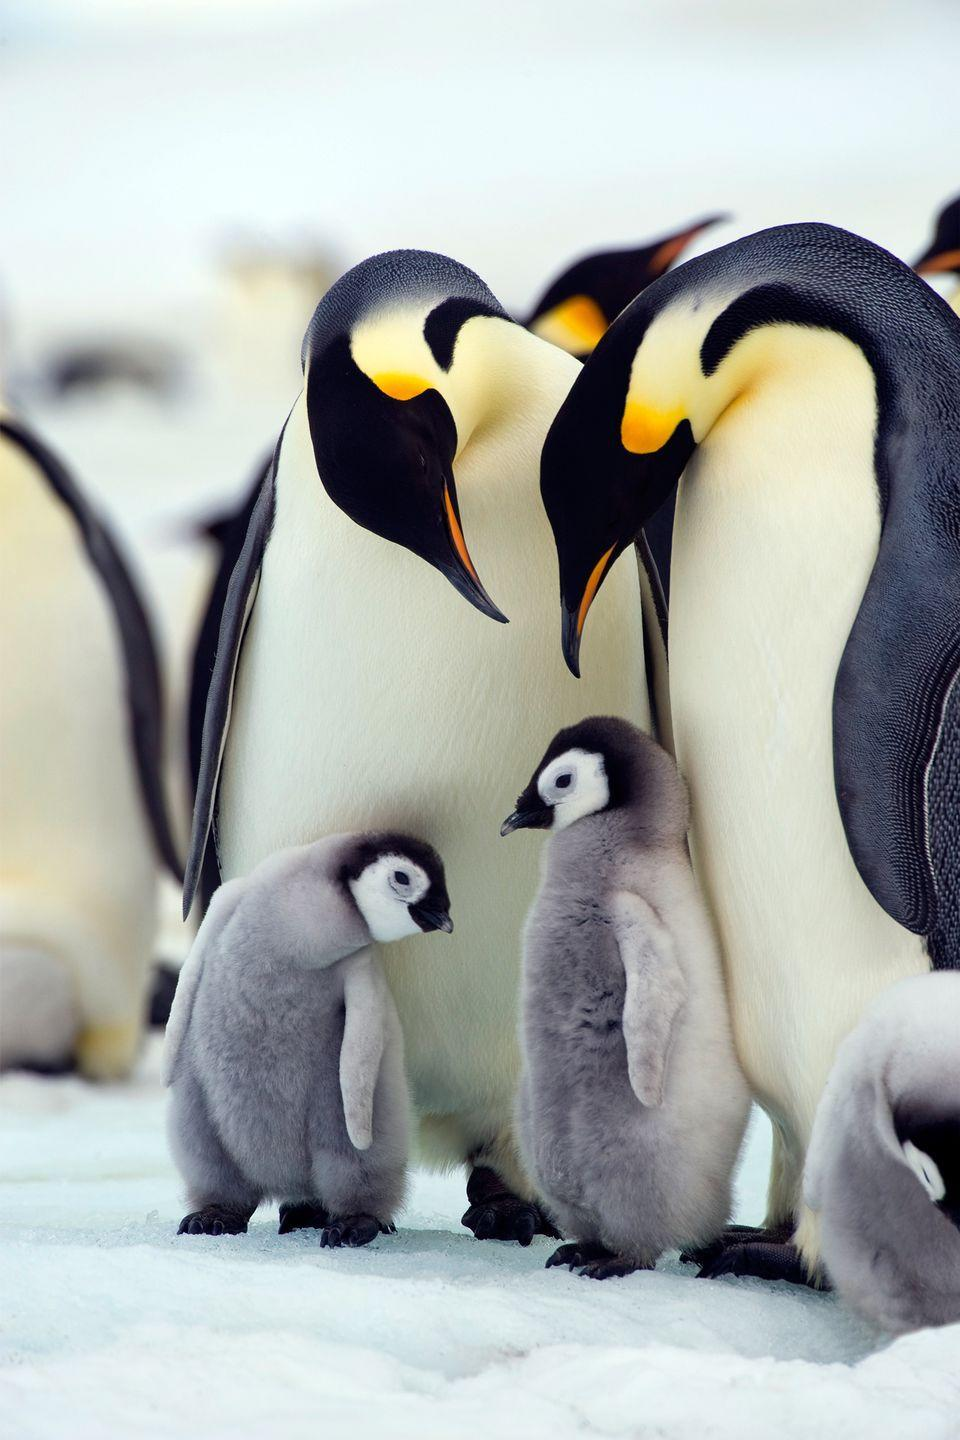 <p>Emperor penguins live in the Arctic, arguably one of the cruelest environments, where it can get below -40 degrees Fahrenheit on the regular. They inhabit the ice and ocean that surrounds them, and have become experts at surviving. They dive up to 1,755 feet for food in water that's well below freezing.</p>